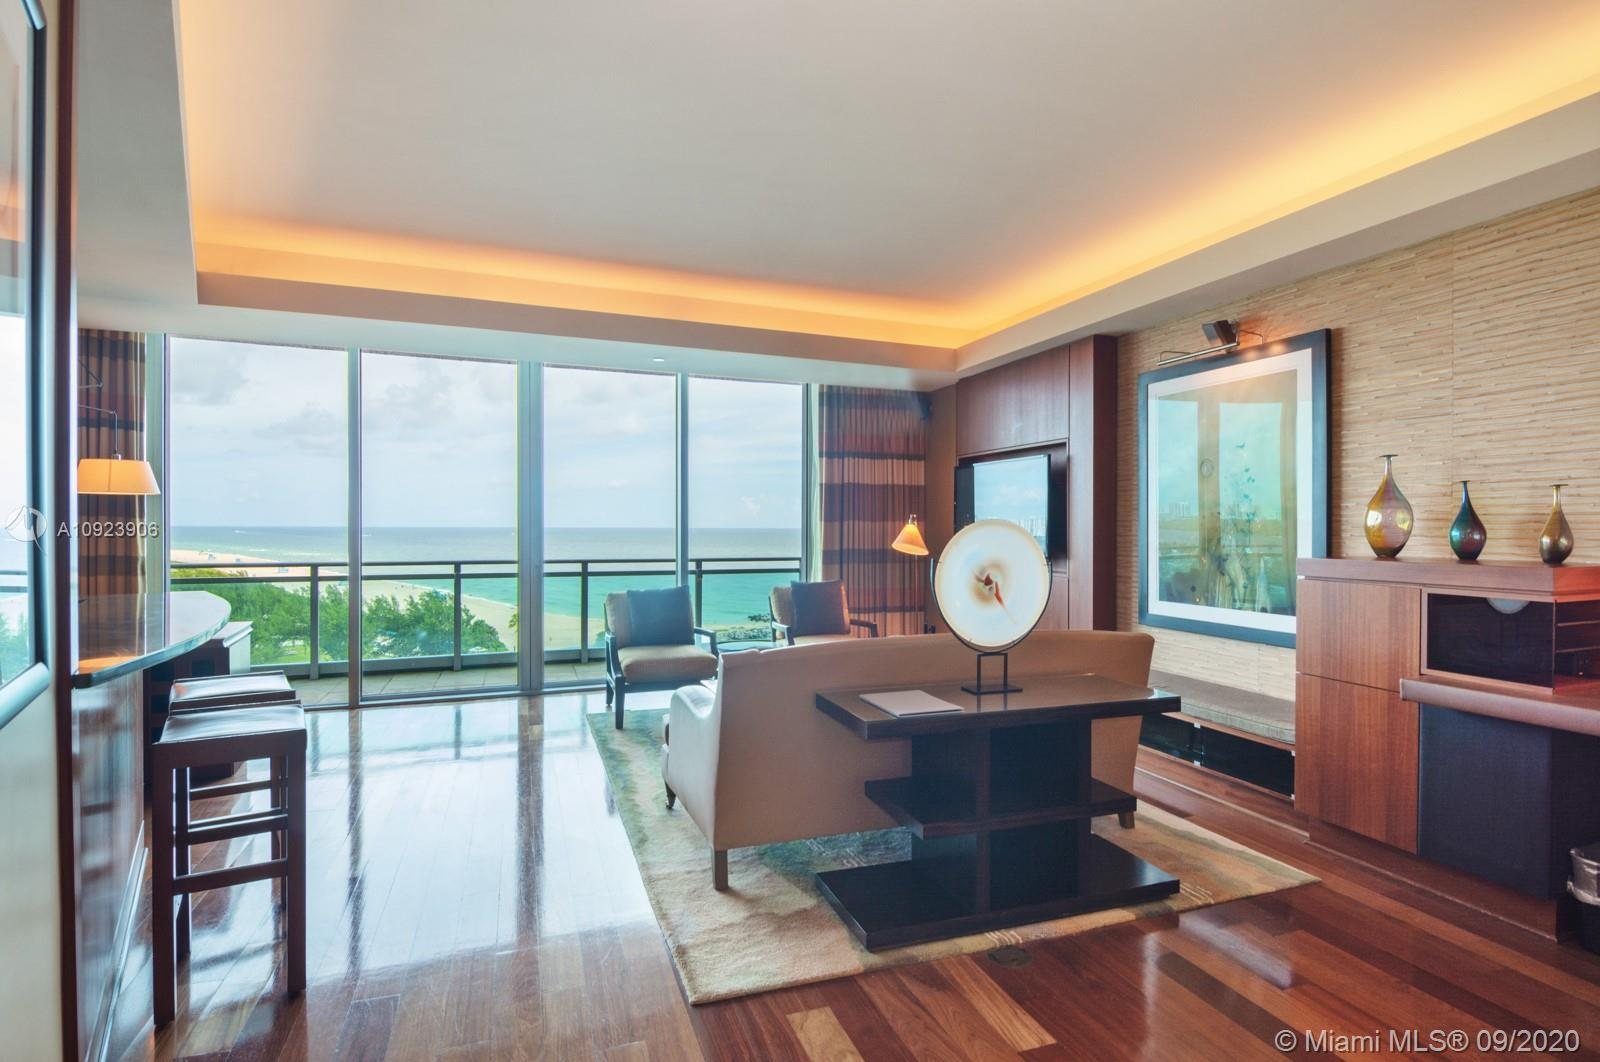 FULL ONE BEDROOM ONE & HALF BATH APARTMENT WITH DIRECT OCEAN VIEWS IN THE RITZ CARLTON BAL HARBOUR!